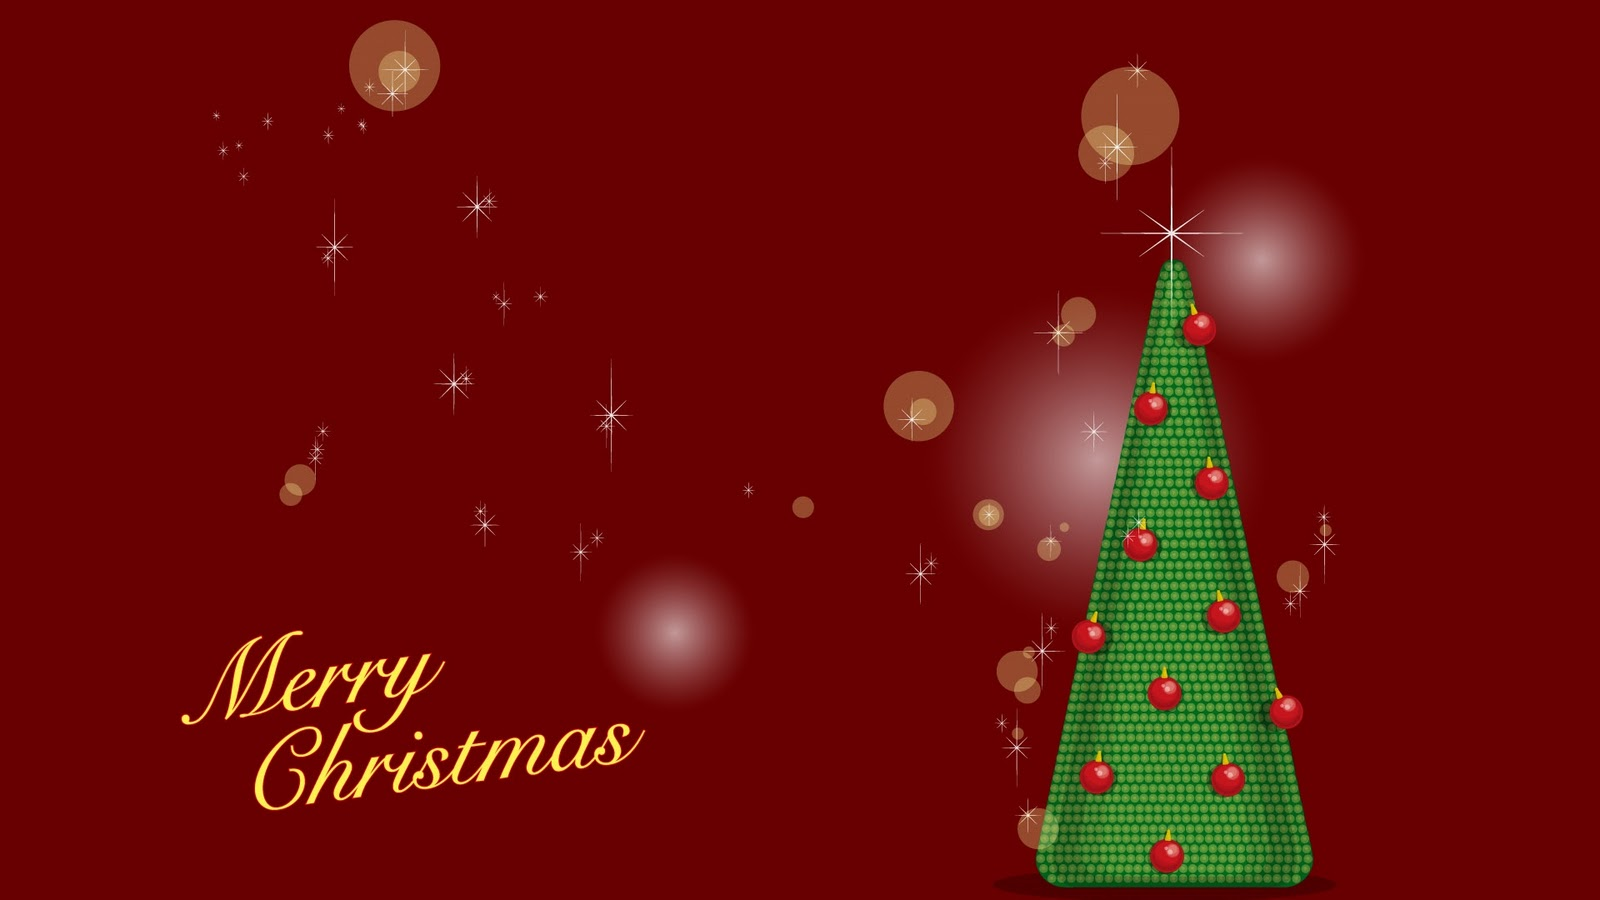 New year christmas celebration PPT Backgrounds